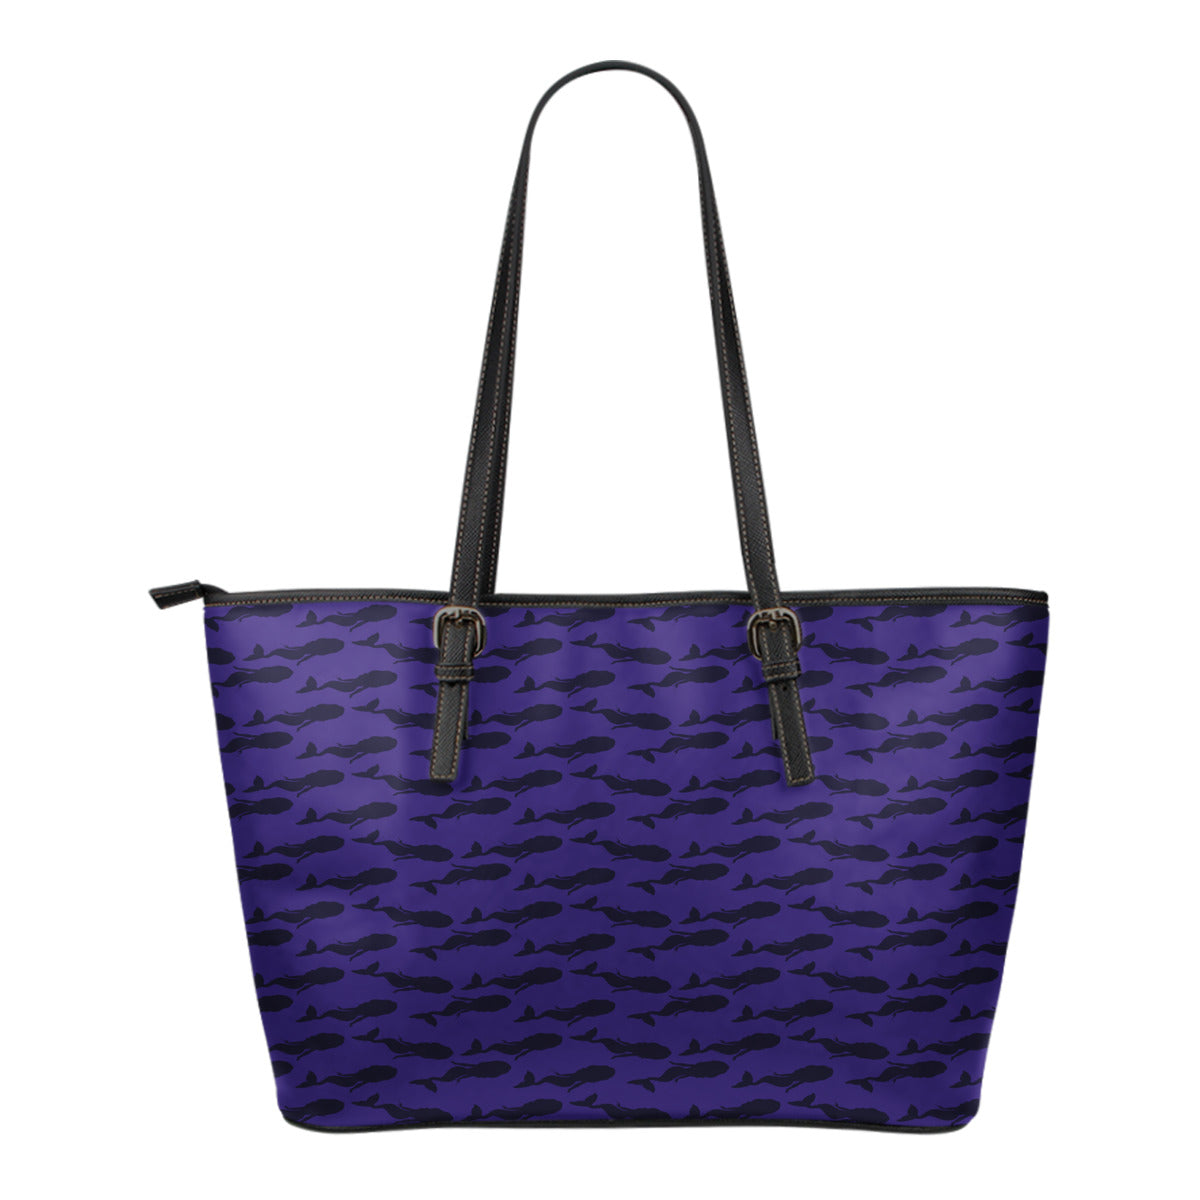 Mermaid Themed Design C1 Women Small Leather Tote Bag